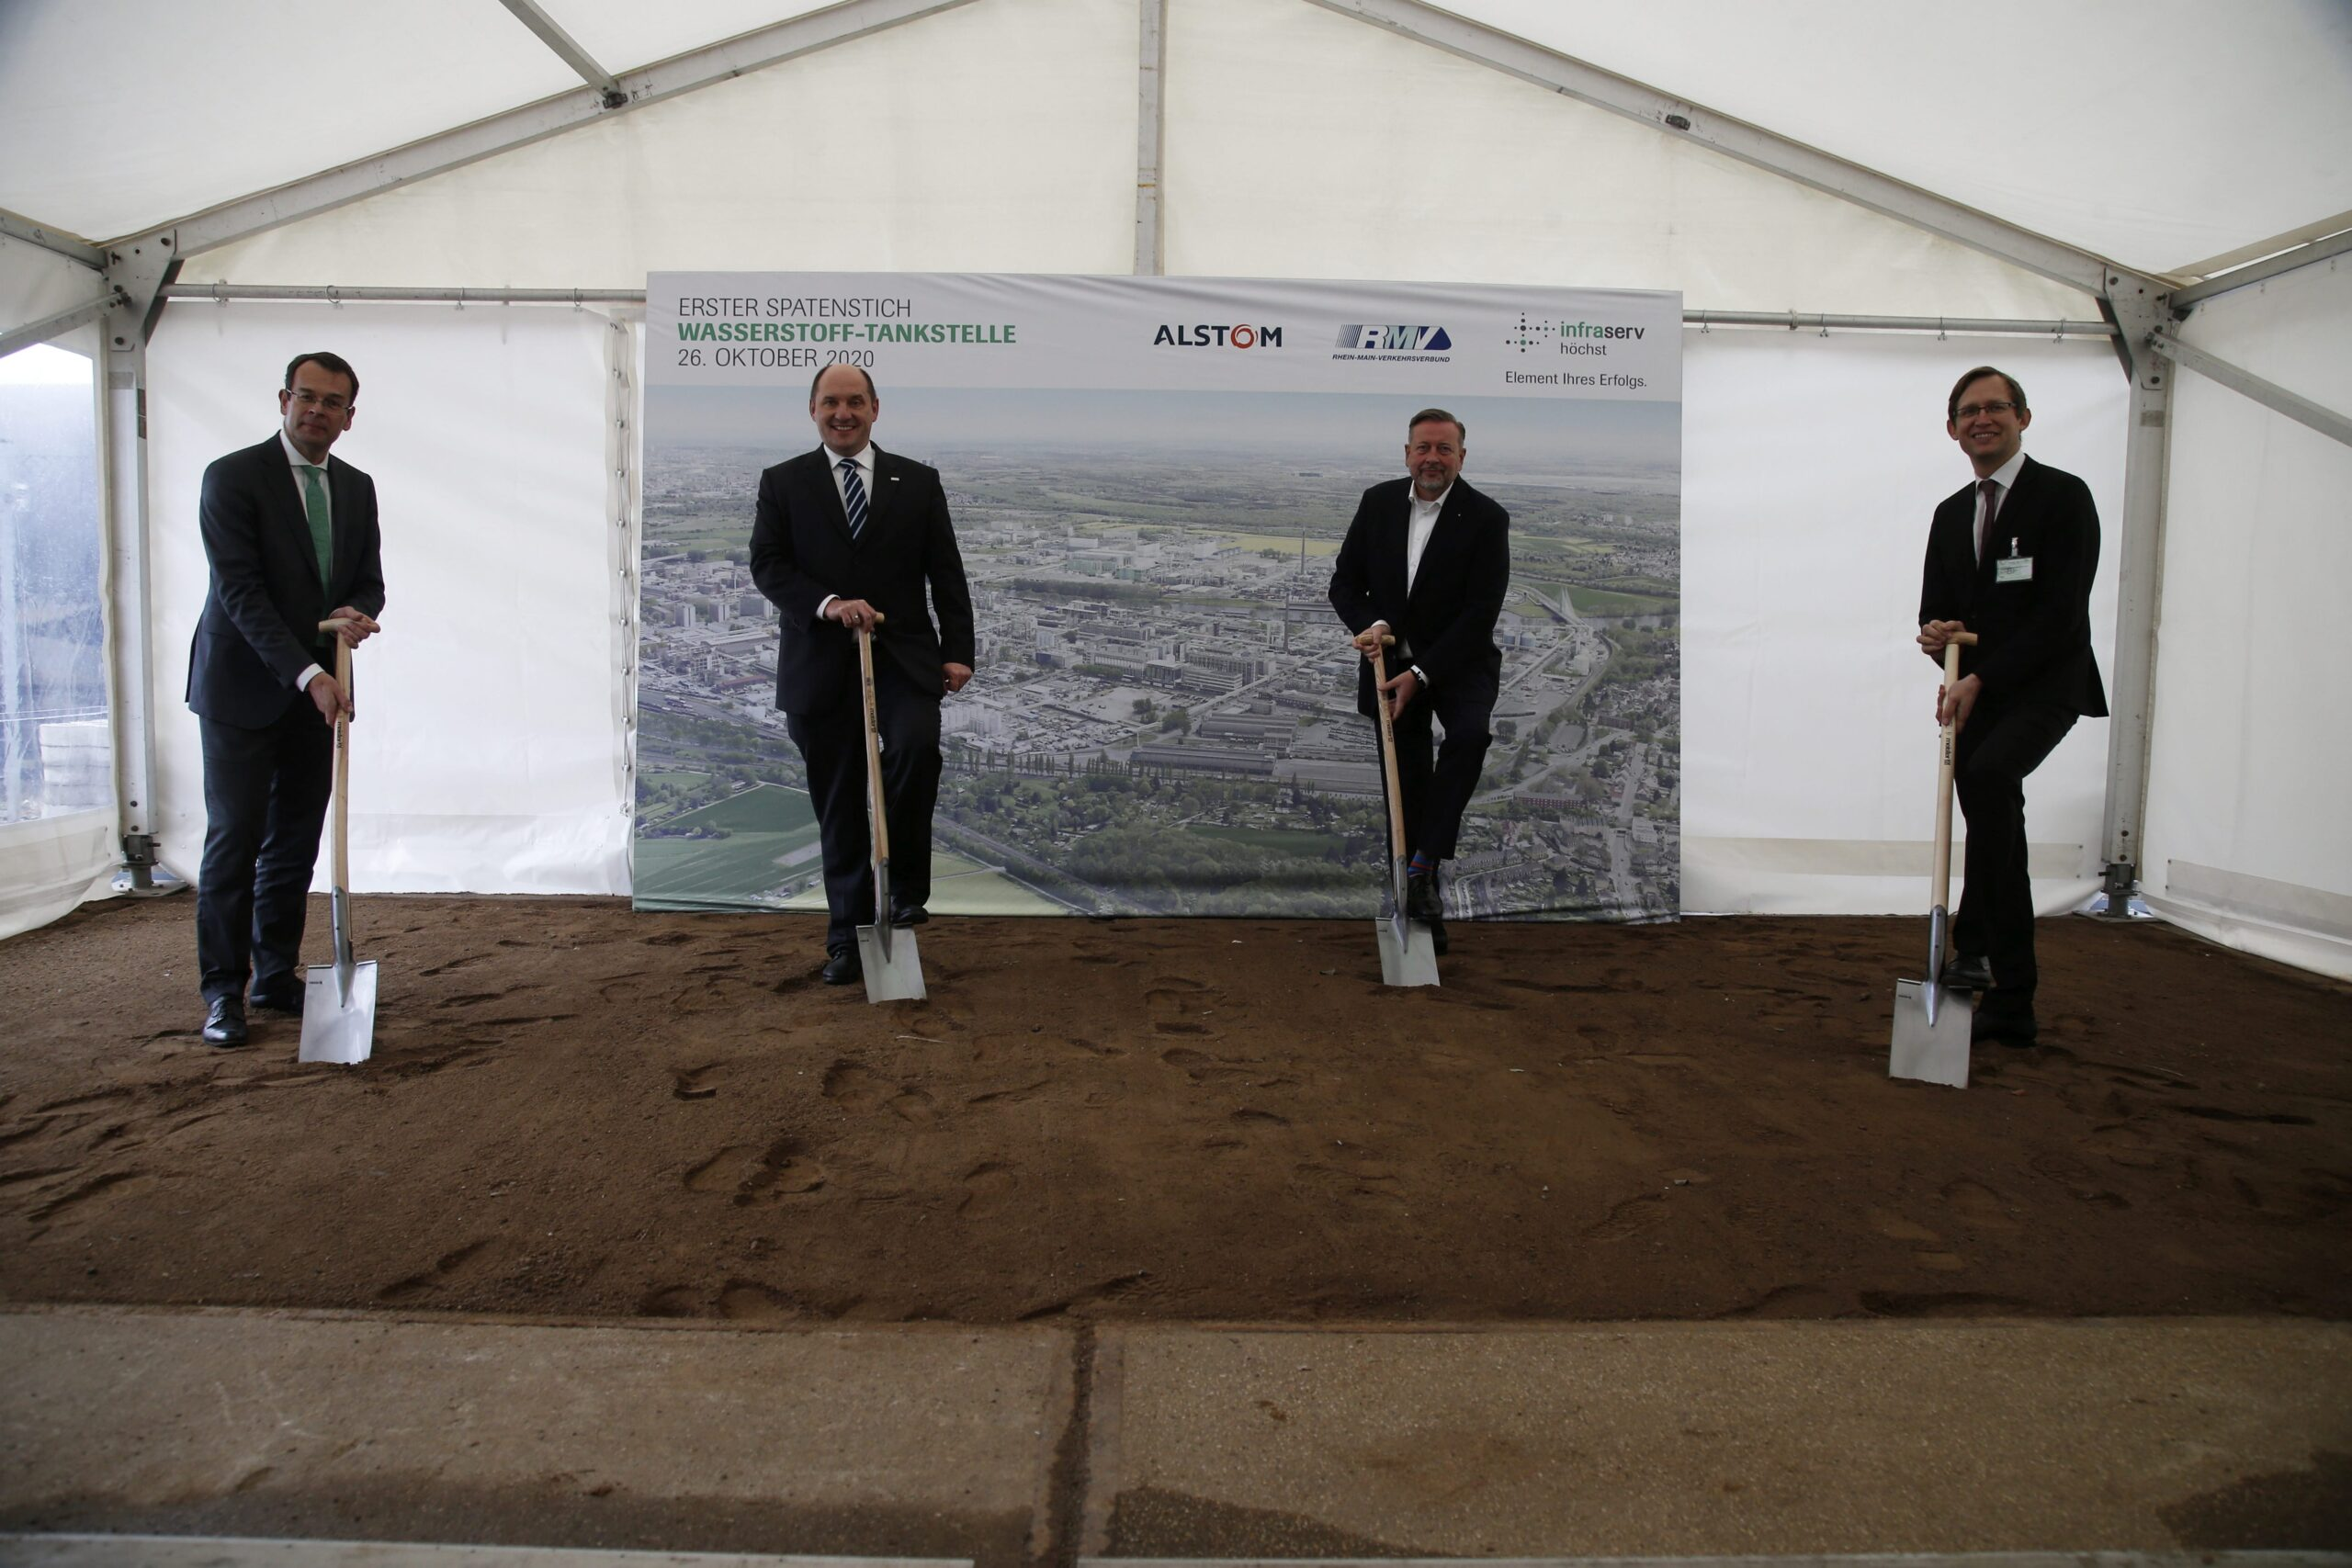 Ground-breaking for hydrogen refuelling station for passenger trains in Hesse, Germany